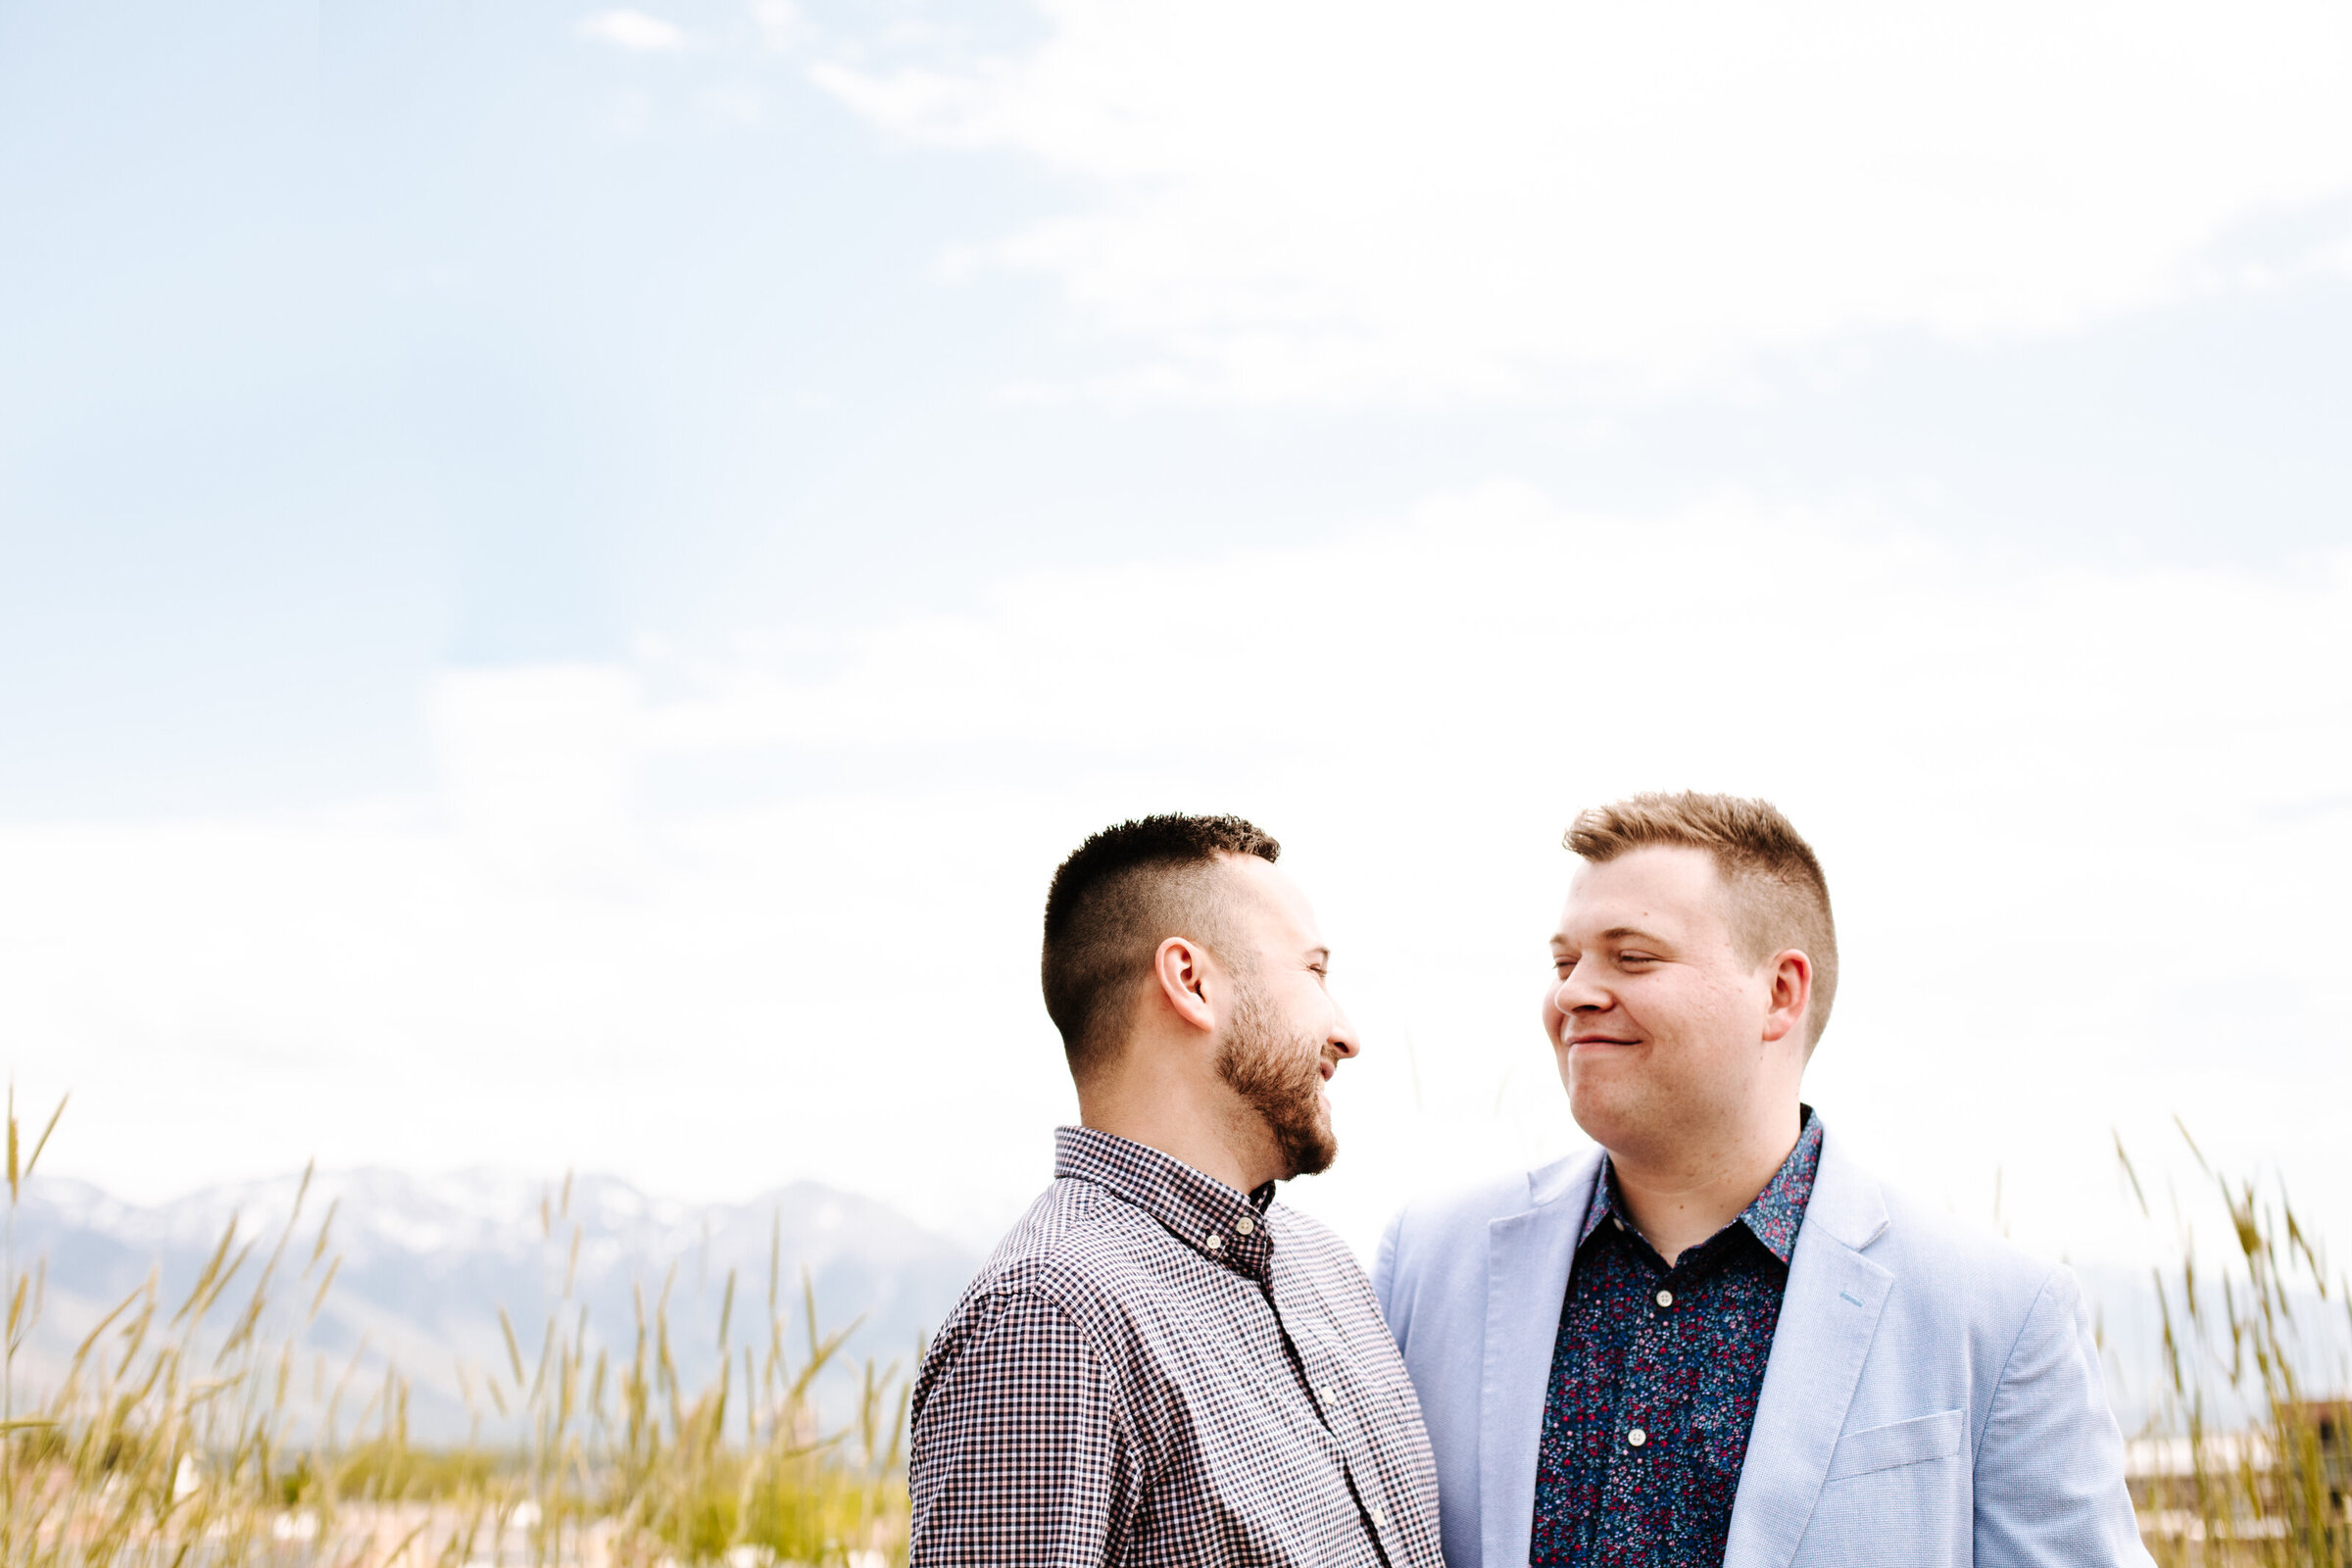 Utah State Capitol LGBTQ Elopement - Photo by Marina Rey Photography LLC-7995